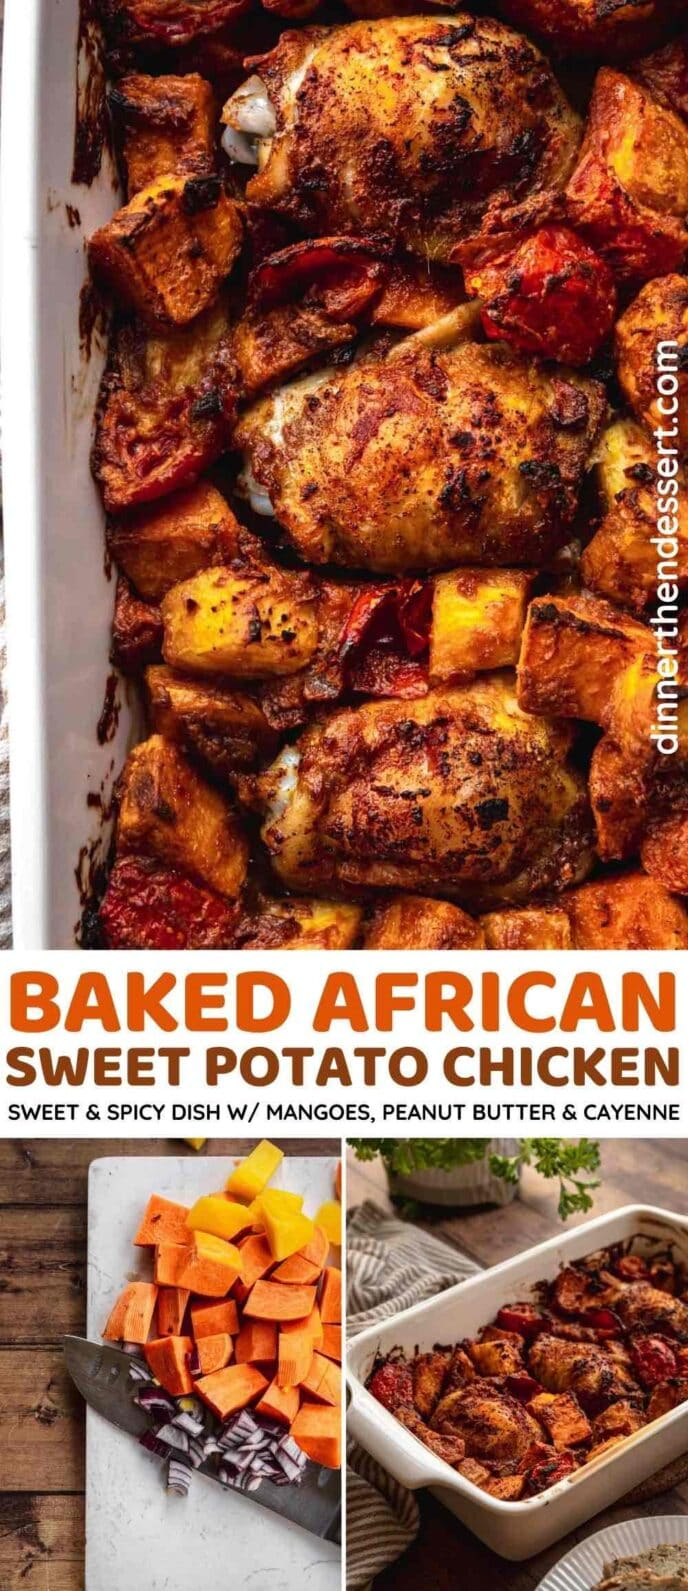 Baked African Sweet Potatoes and Chicken collage